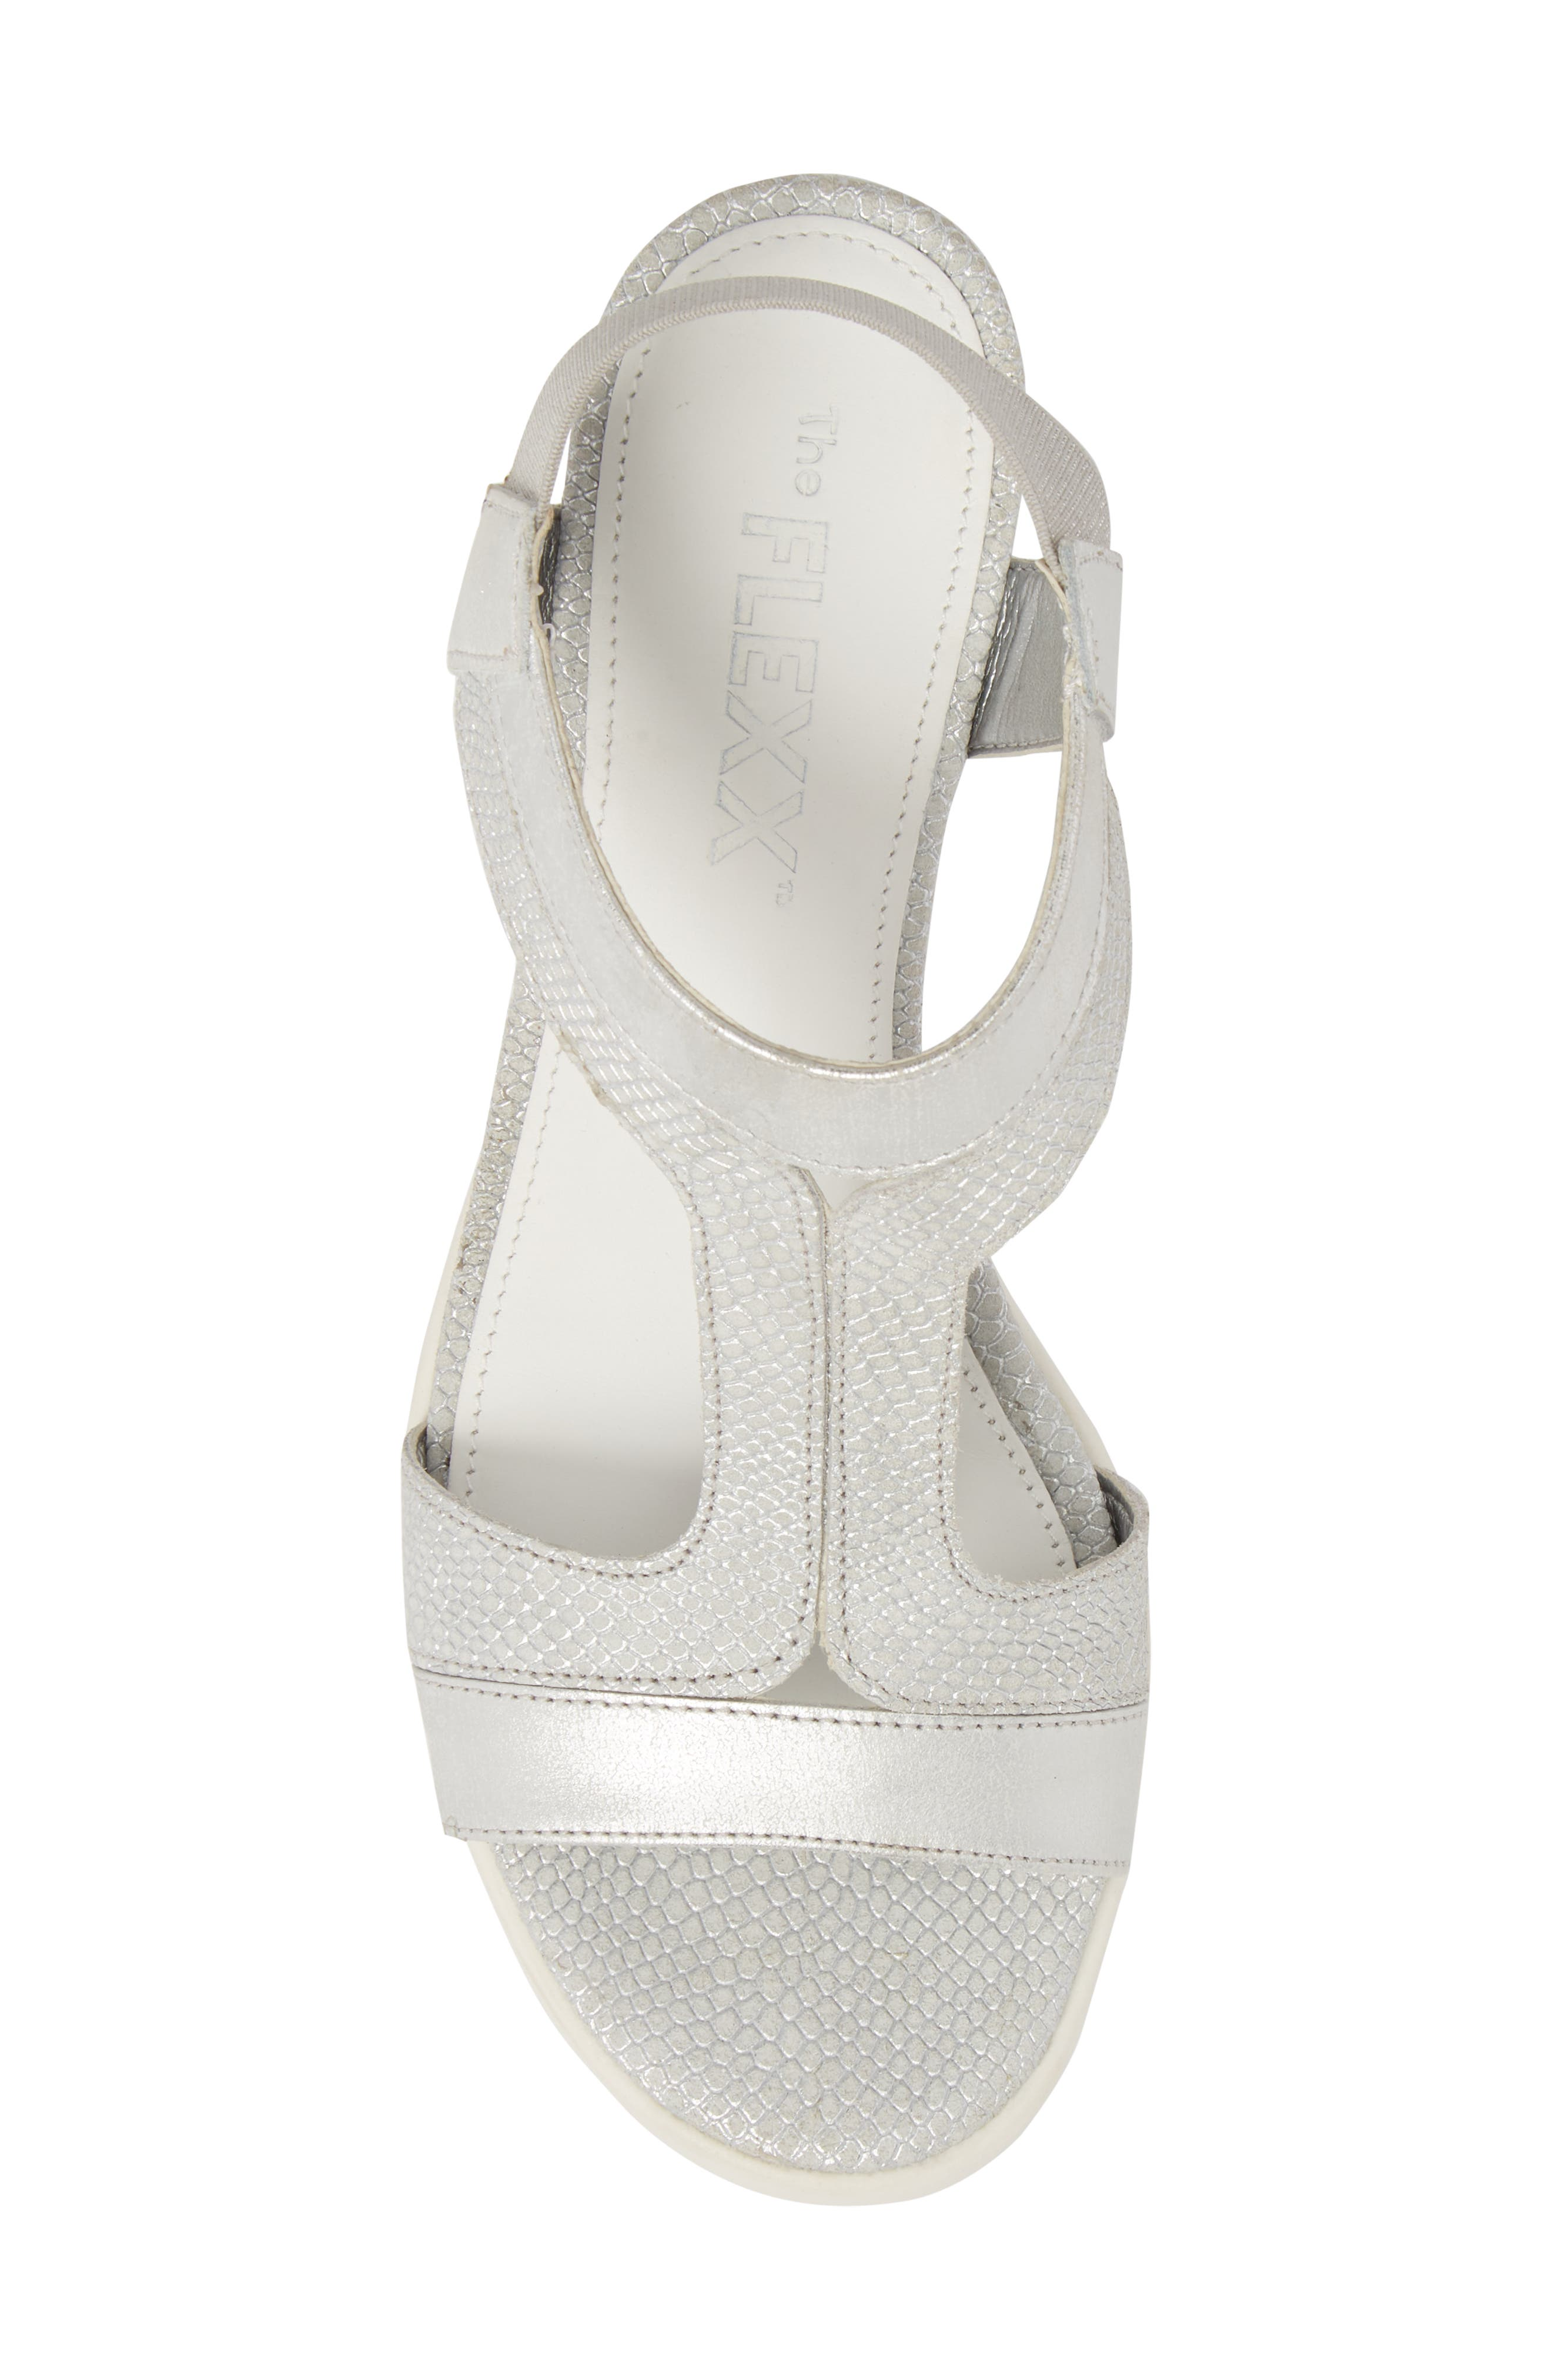 Give A Hoot Wedge Sandal,                             Alternate thumbnail 5, color,                             Silver Leather